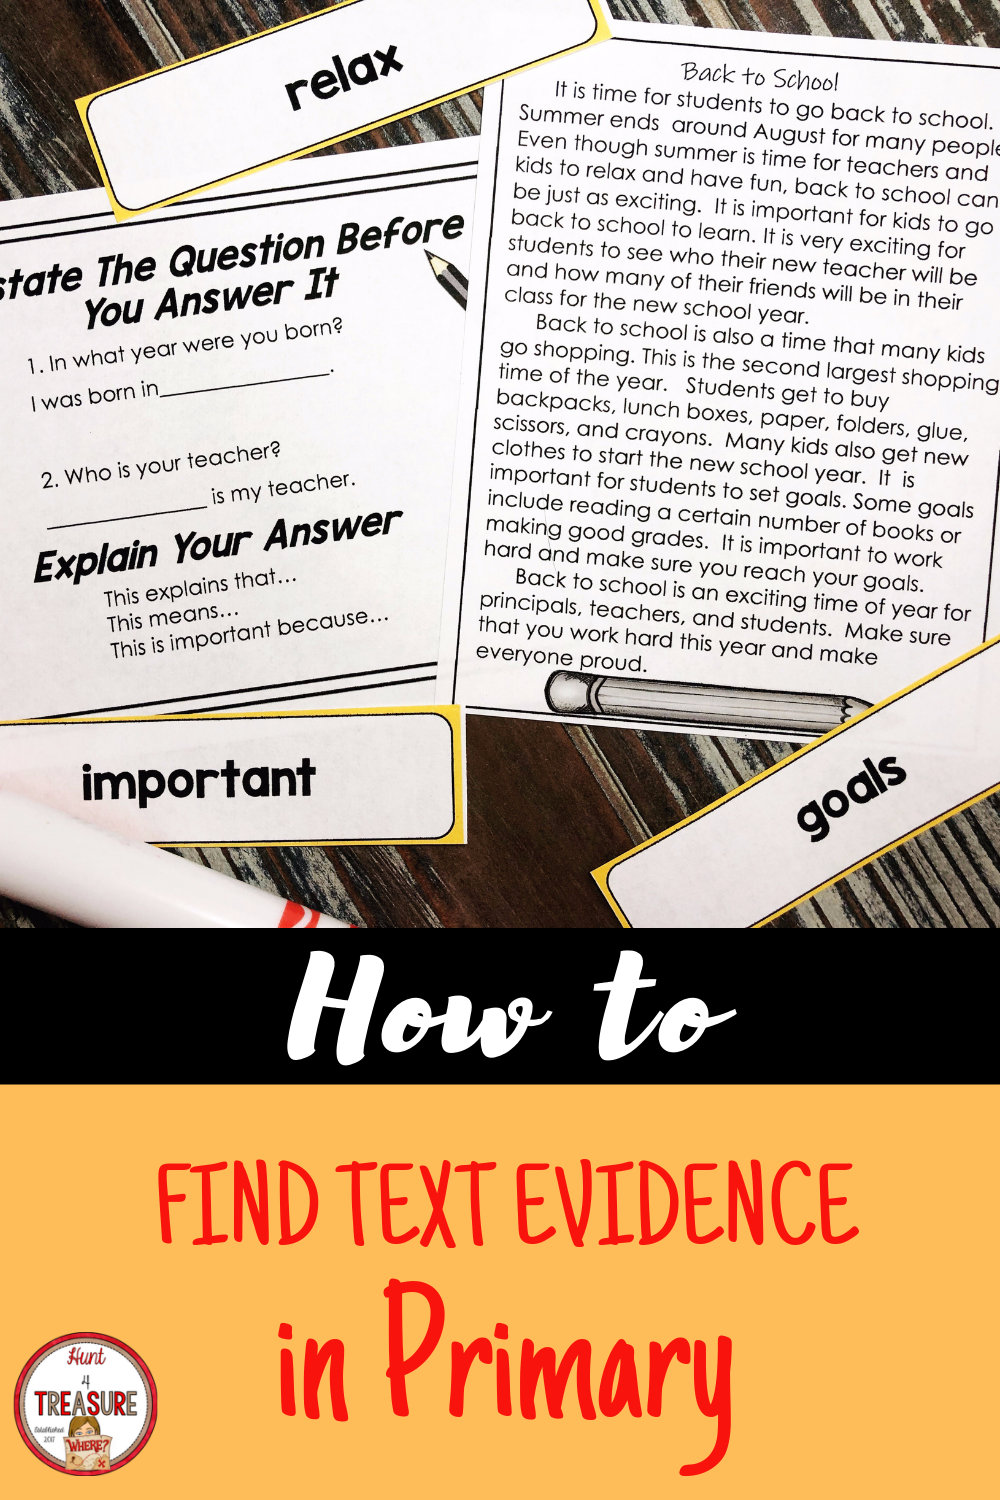 Back To School Finding Text Evidence Text Evidence Text Evidence Activities Reading Passages [ 1500 x 1000 Pixel ]